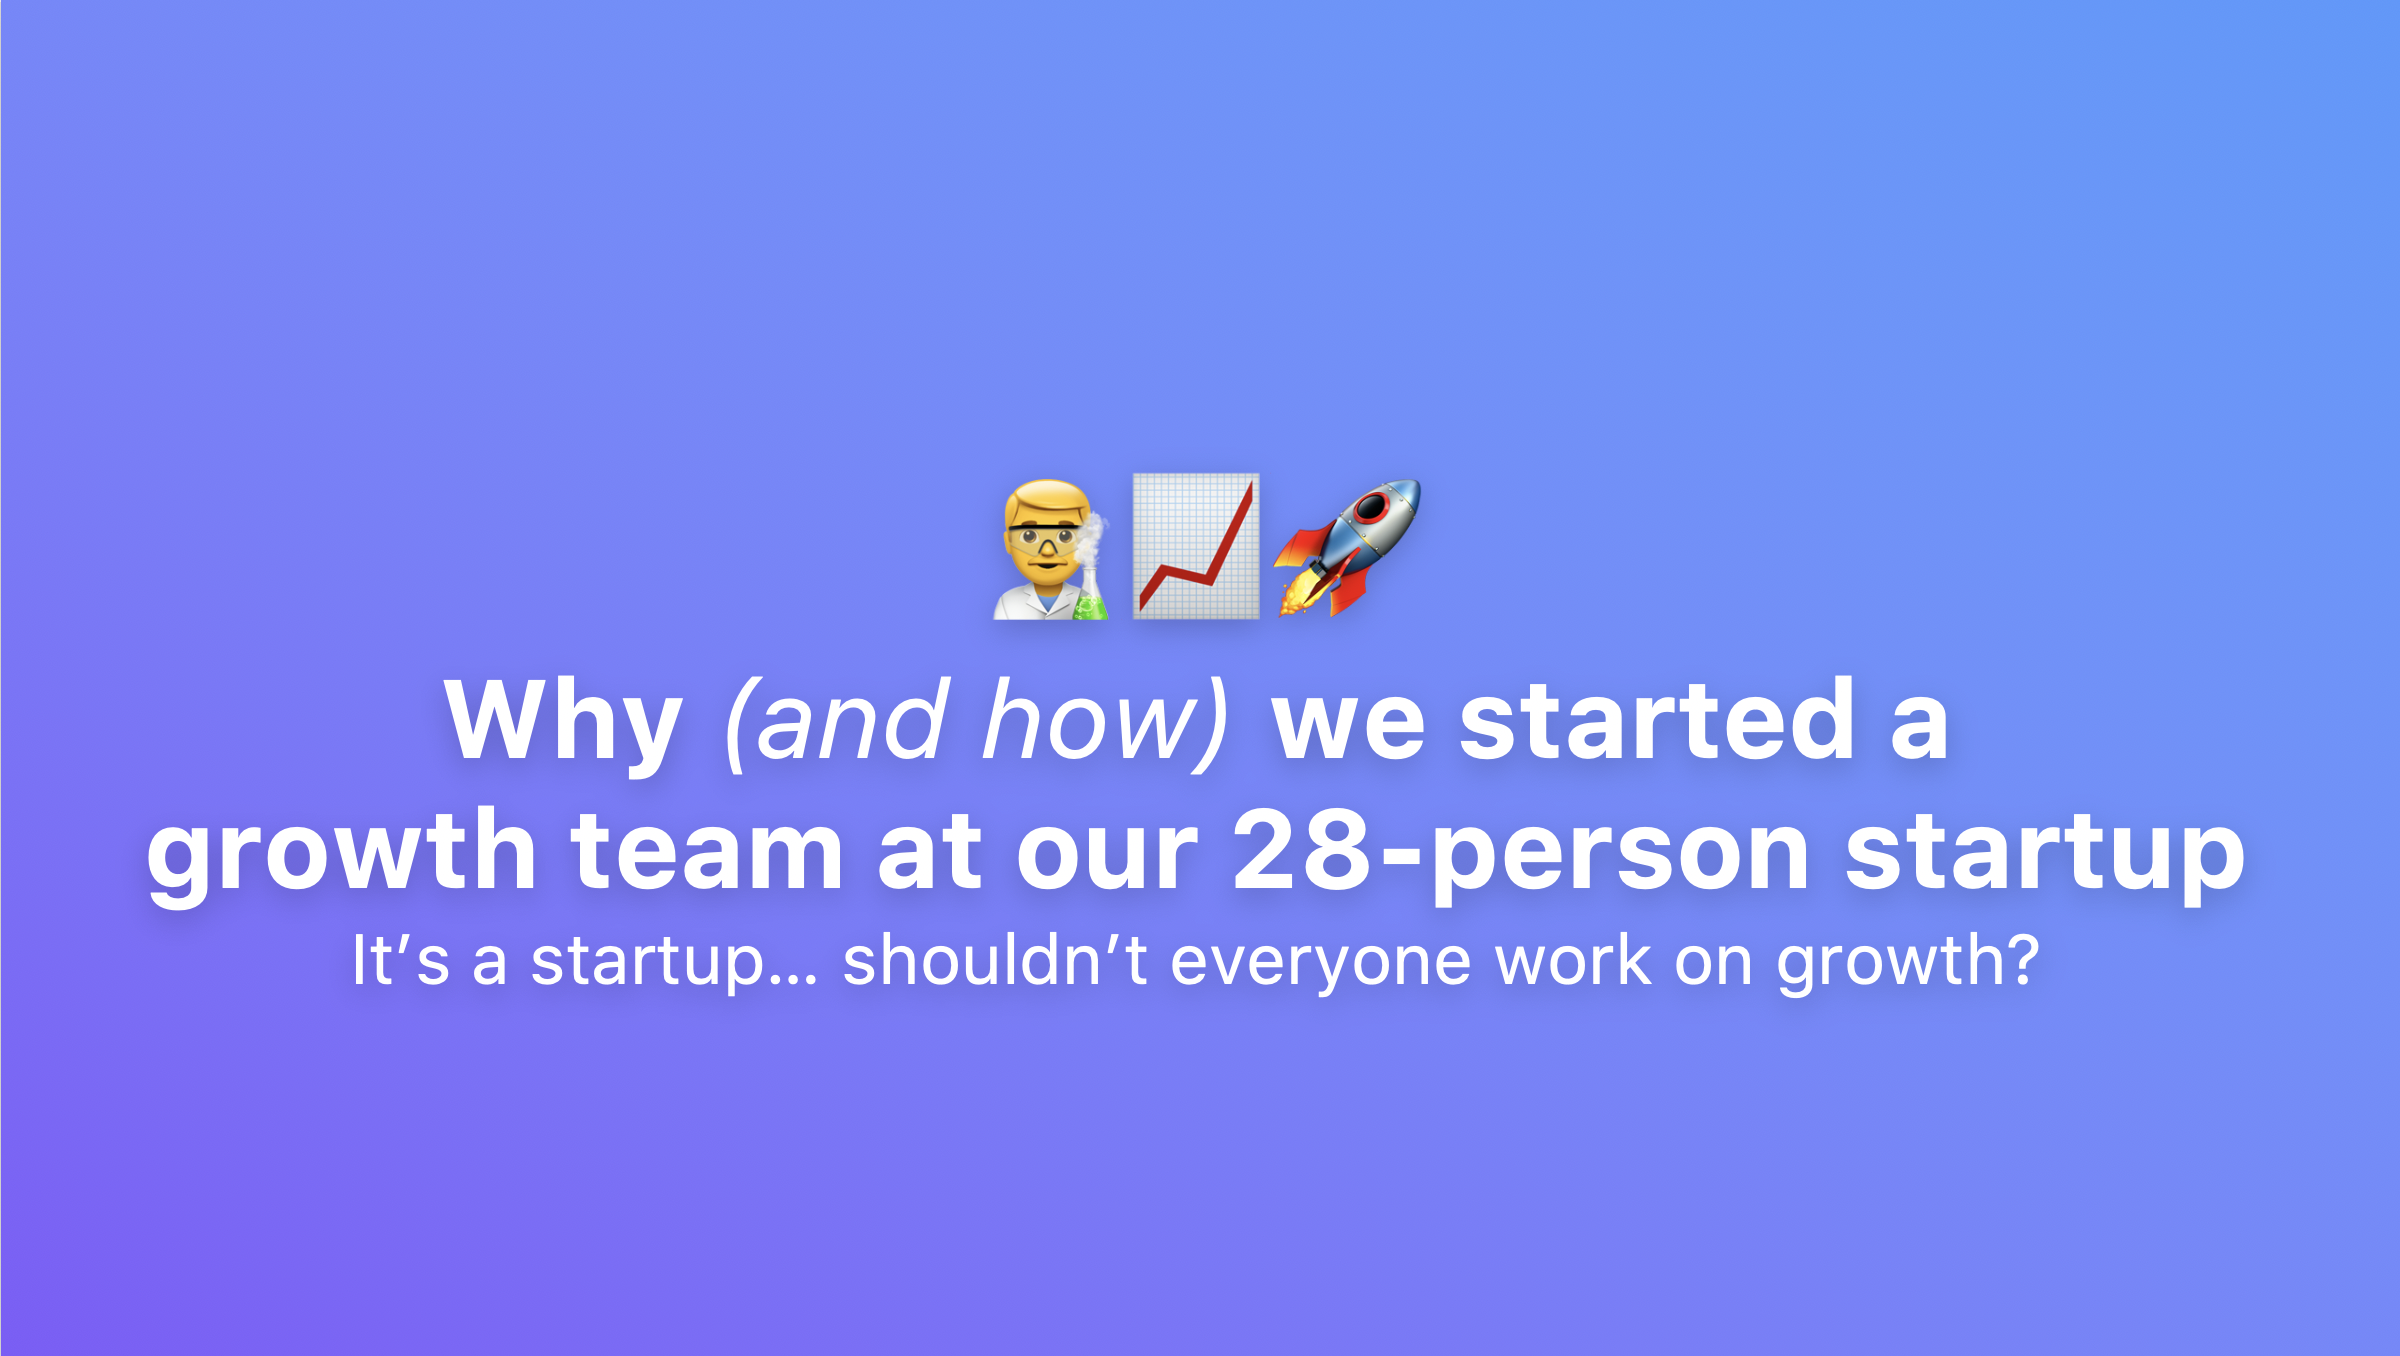 /why-and-how-we-started-a-growth-team-at-our-28-person-startup-849dcd8da554 feature image